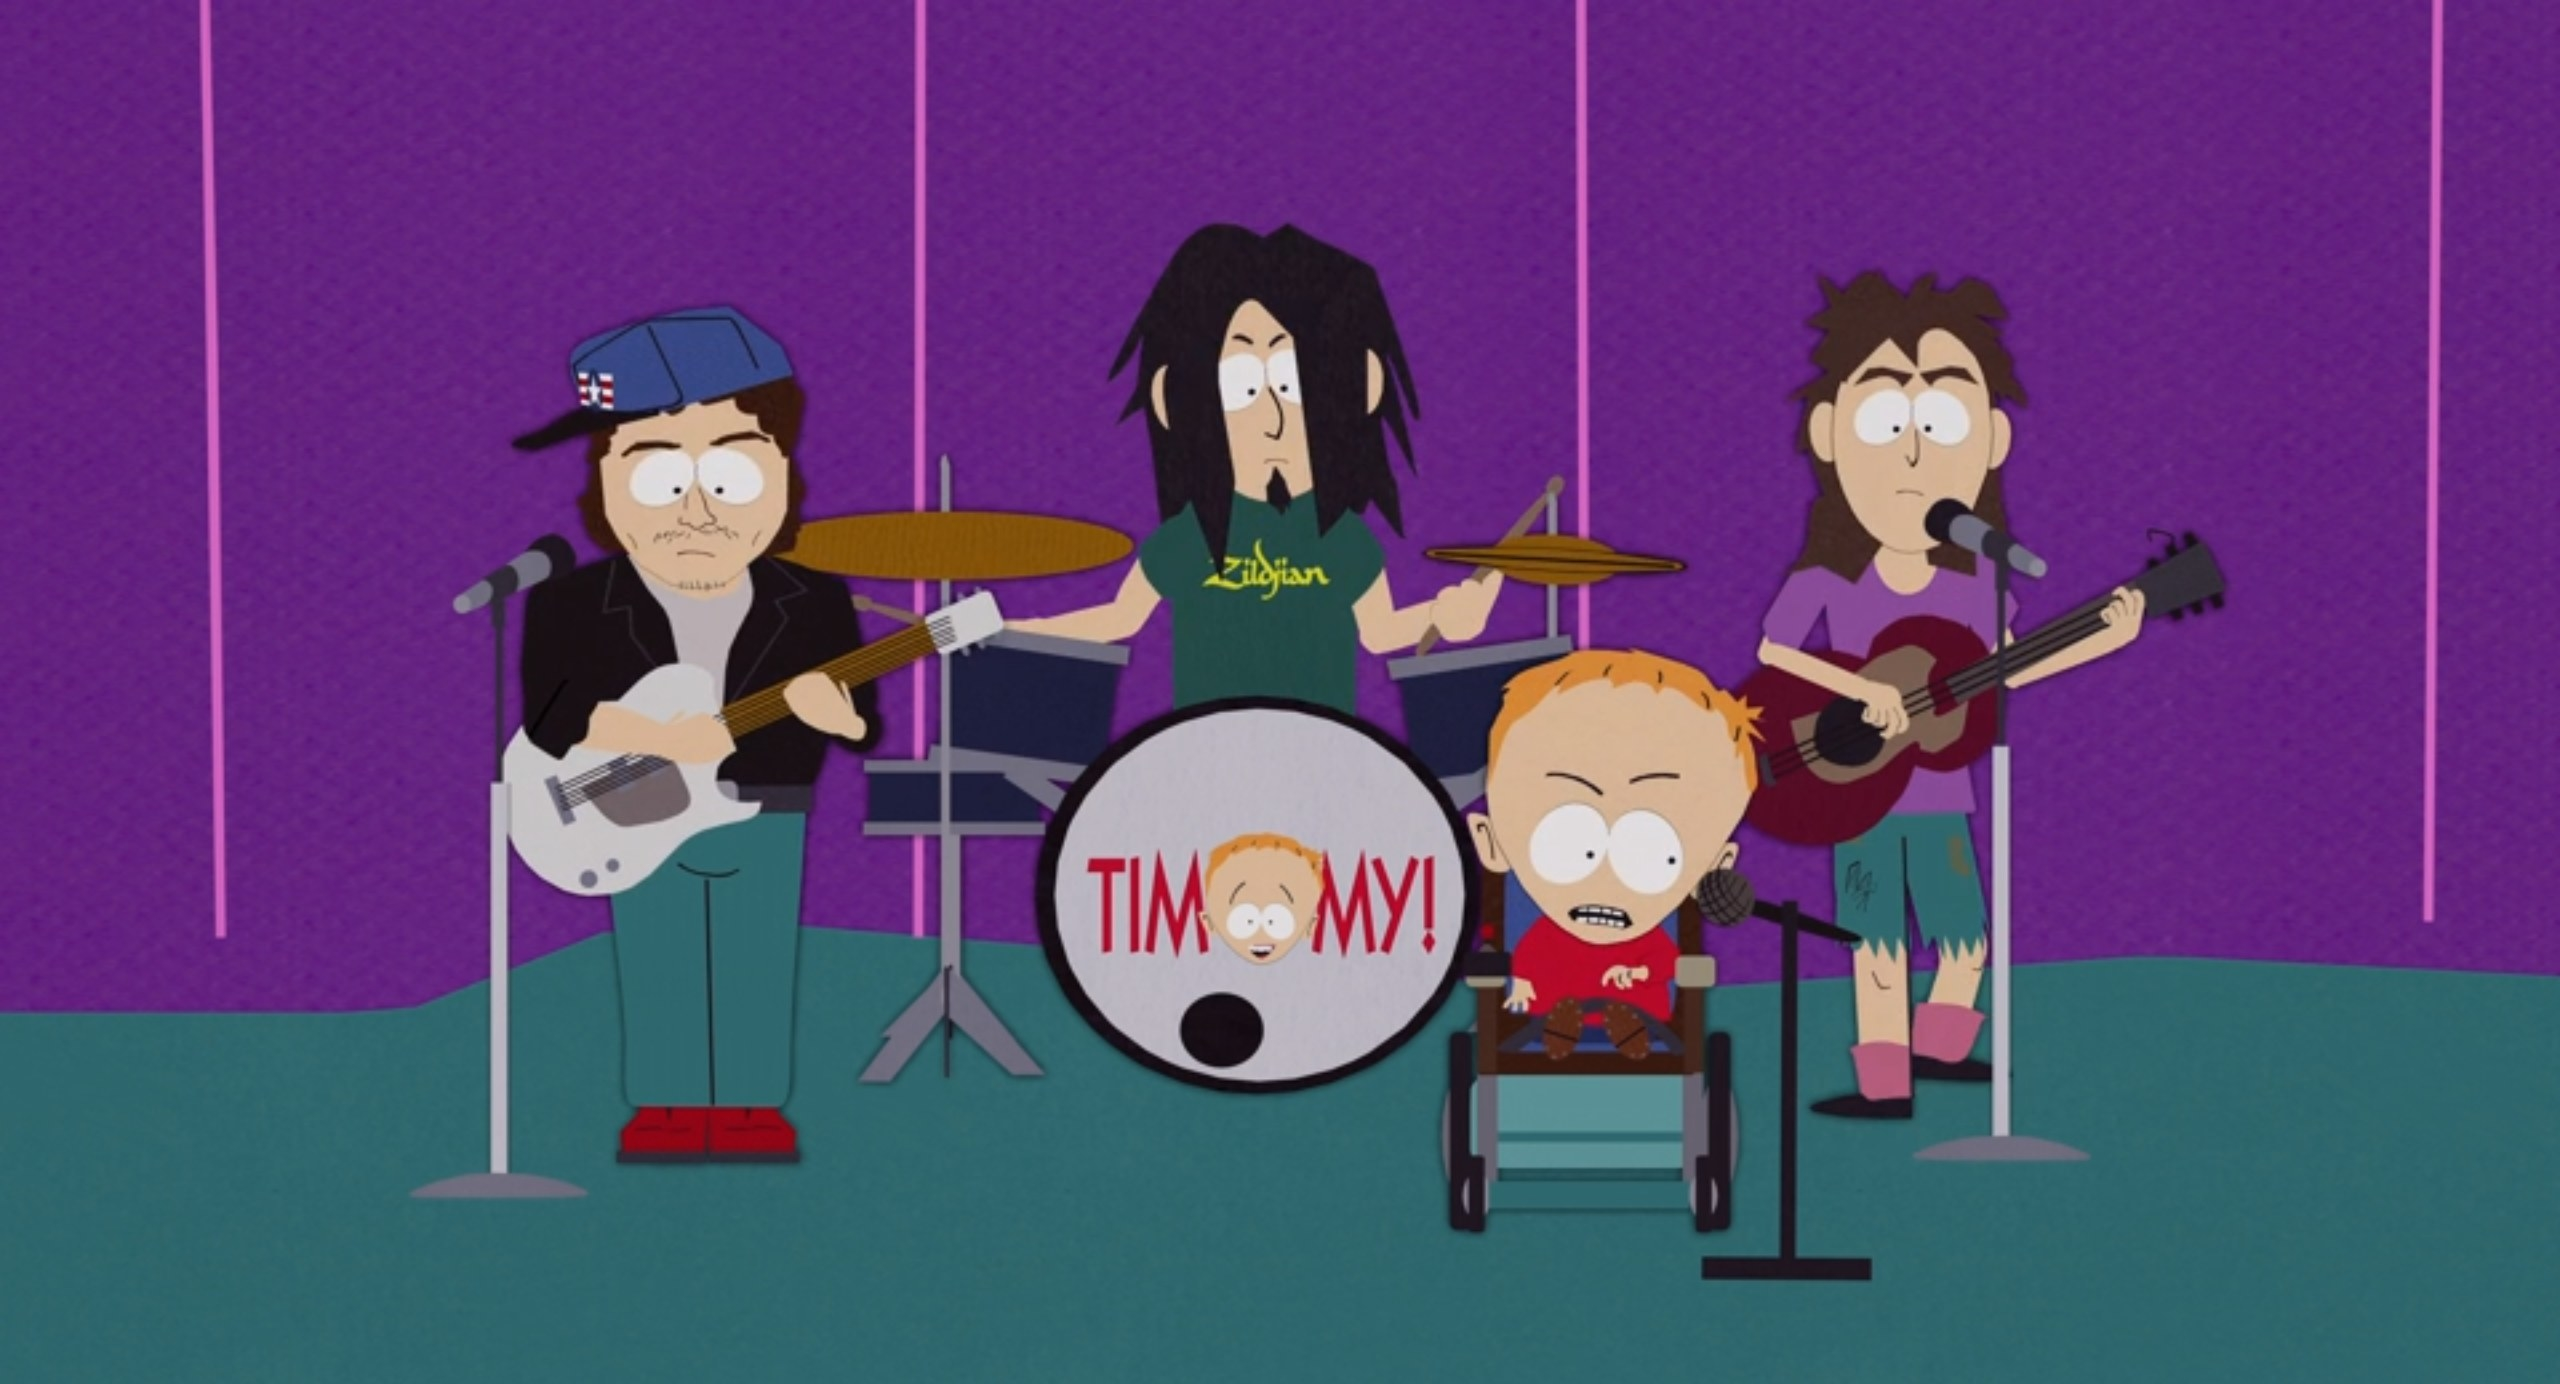 Timmy and the Lords of the Underworld perform